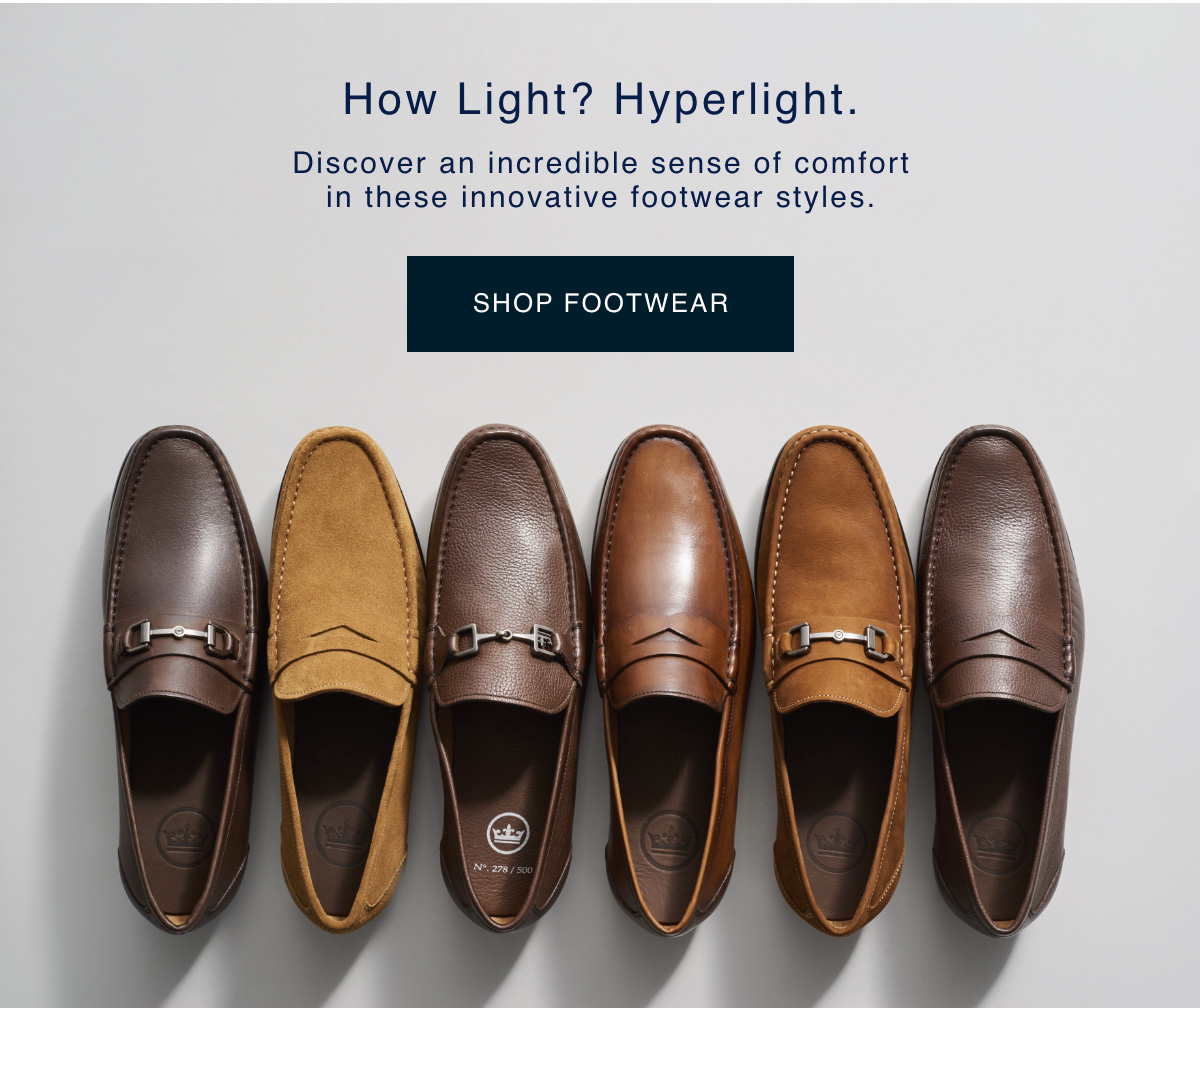 How Light? Hyperlight. | SHOP FOOTWEAR